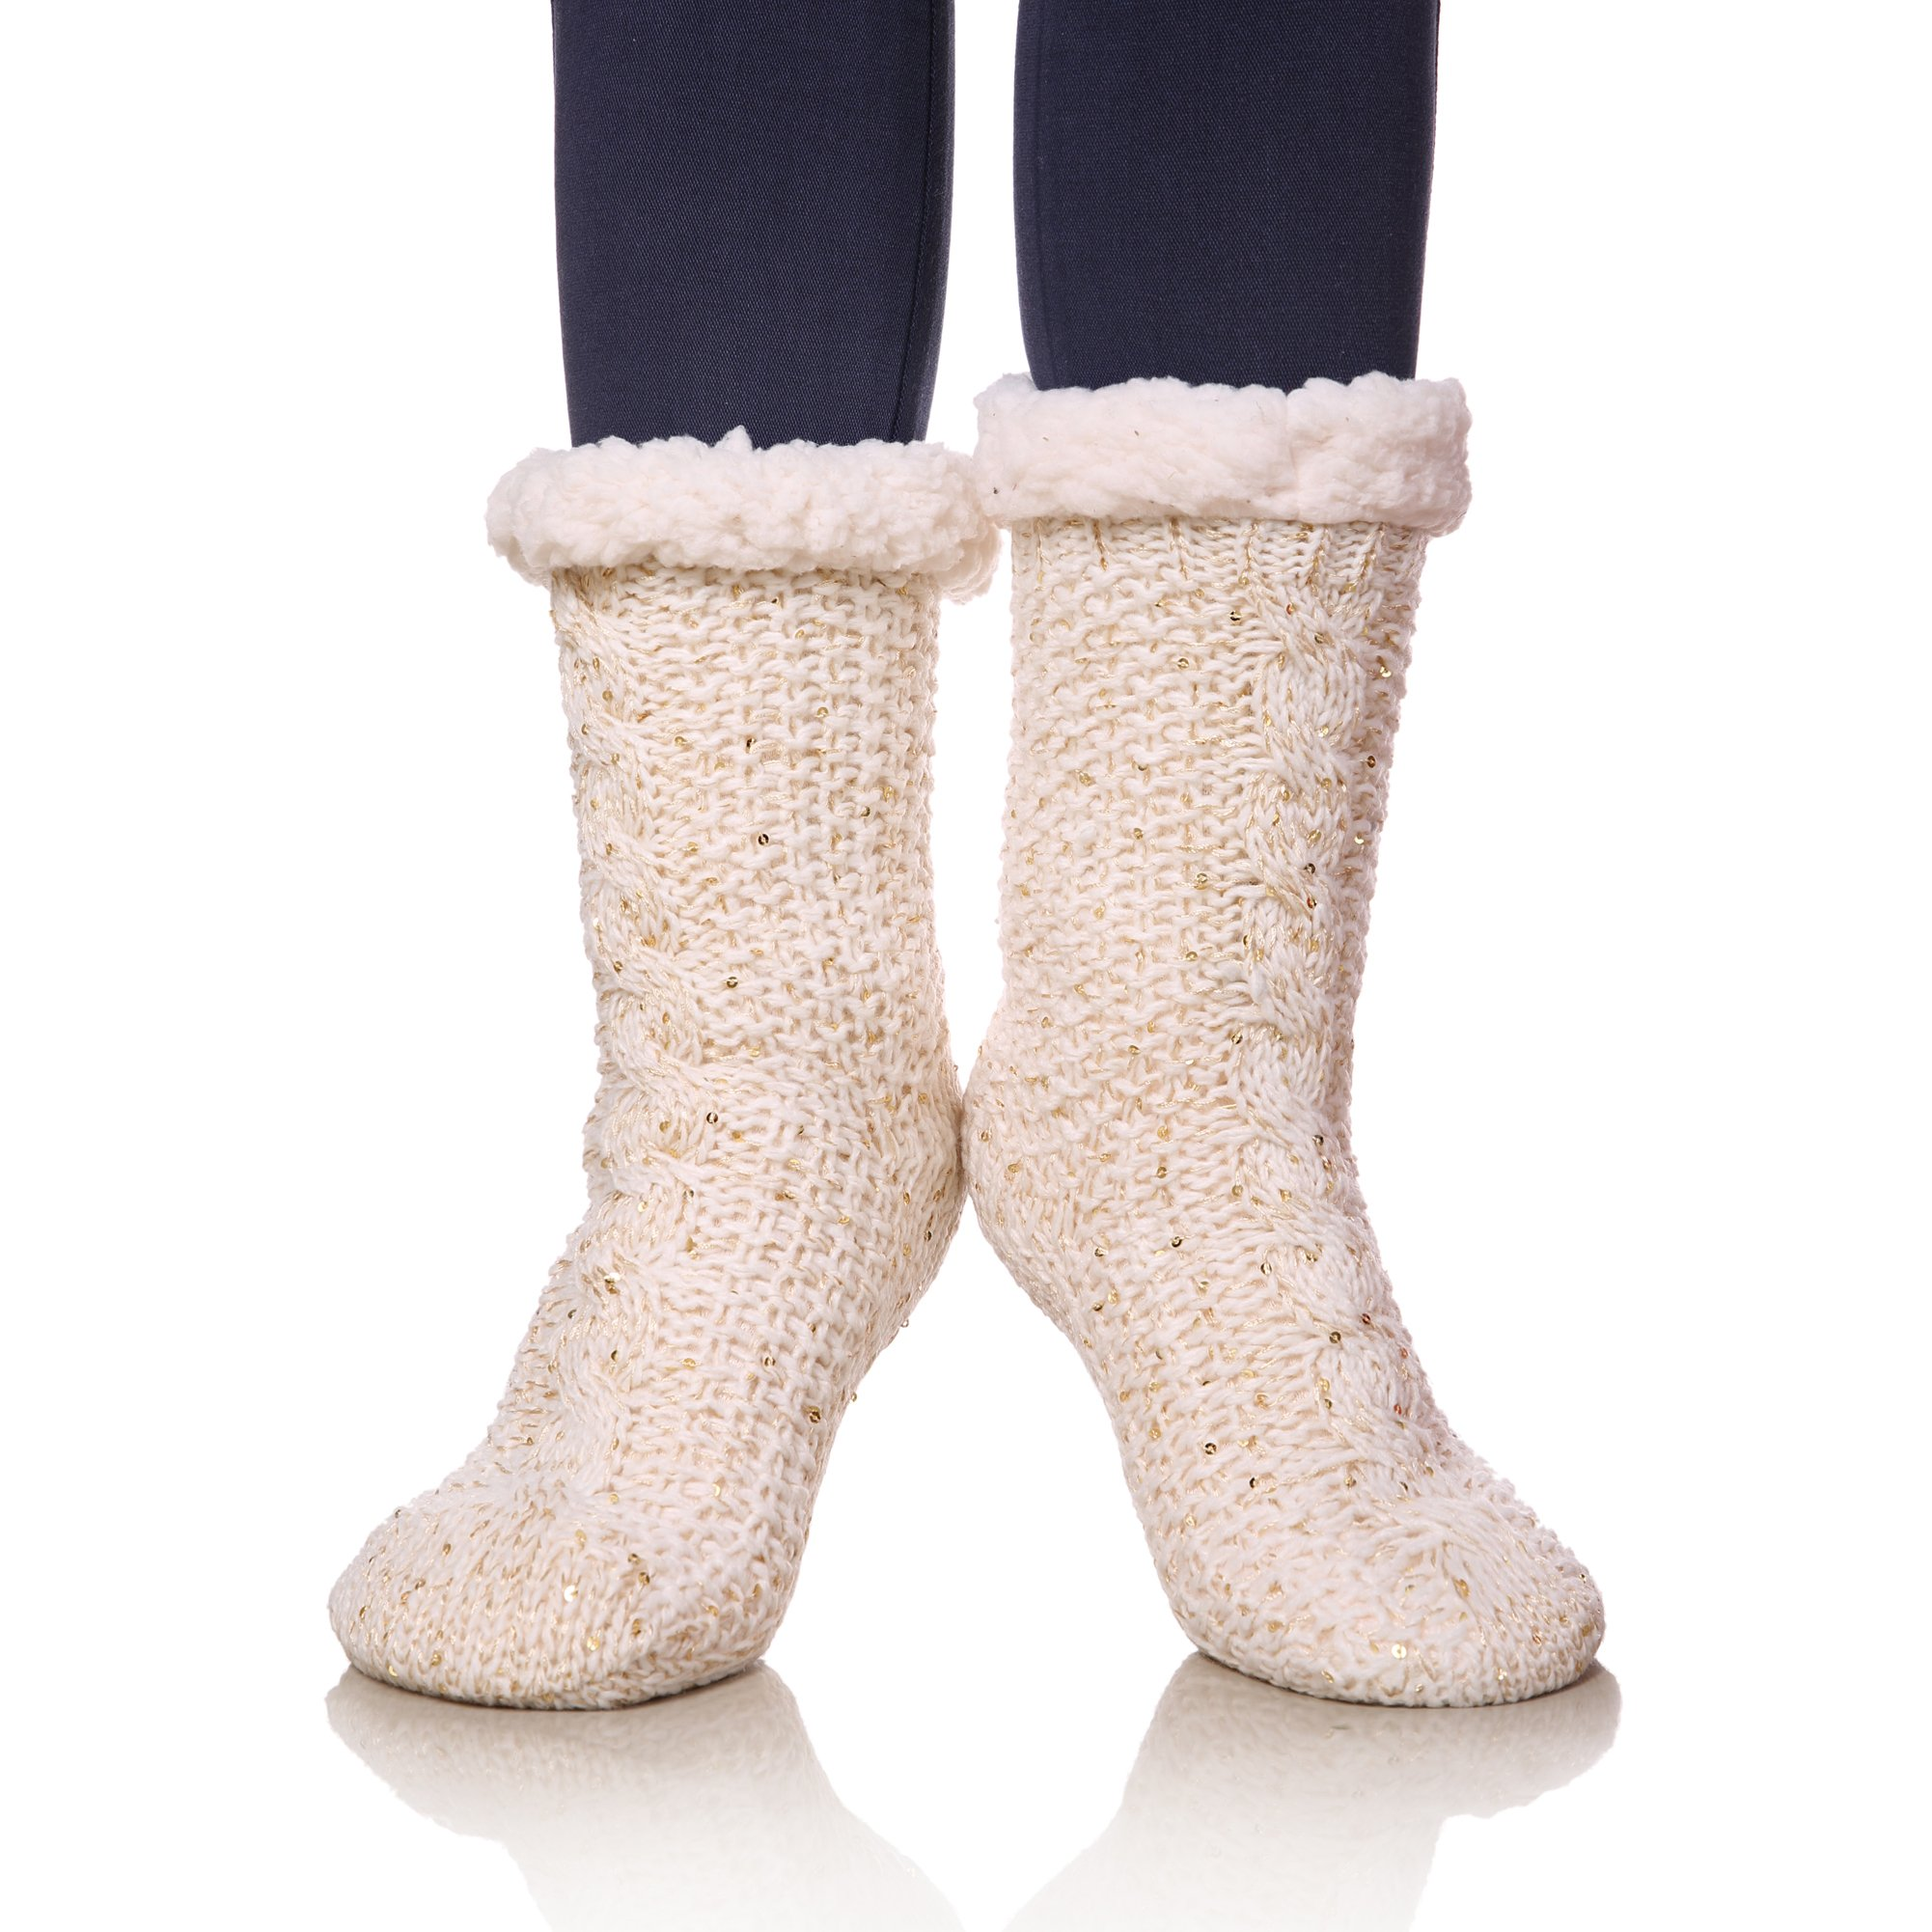 SDBING Womens Sequin Super Soft Warm Cozy Fuzzy Fleece-lined Winter Christmas gift Slipper socks